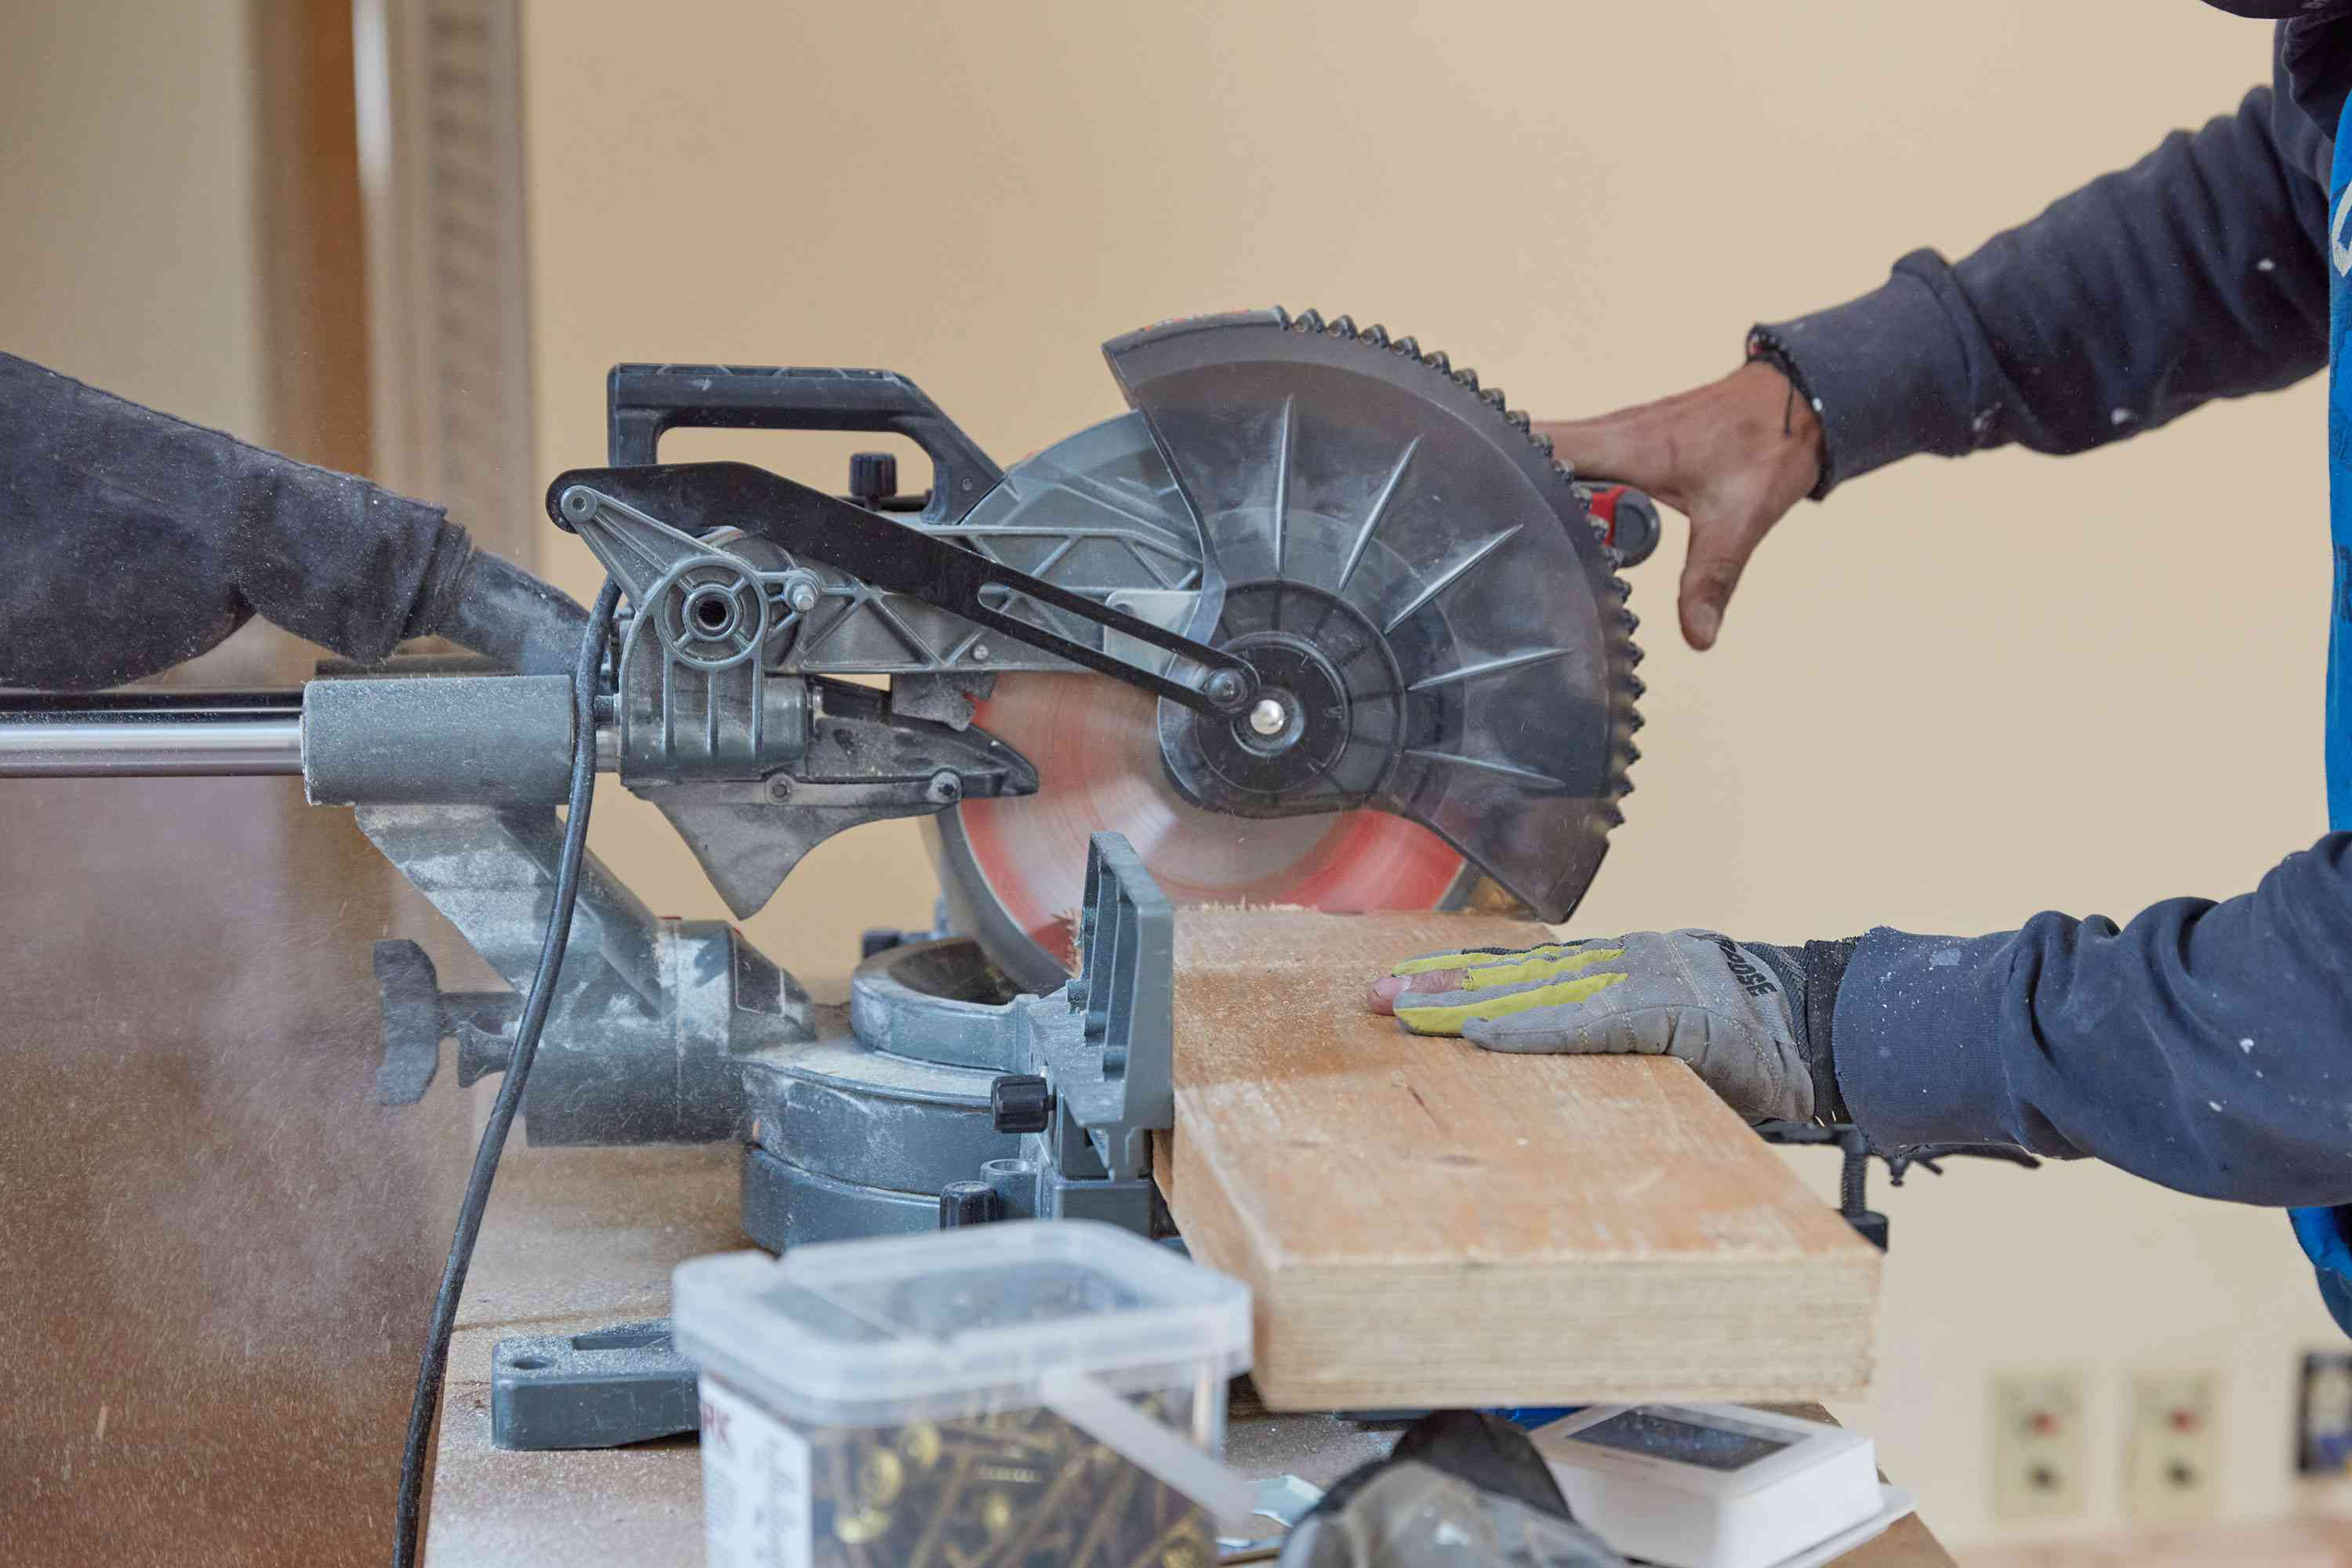 Wooden support beam cut by power miter saw